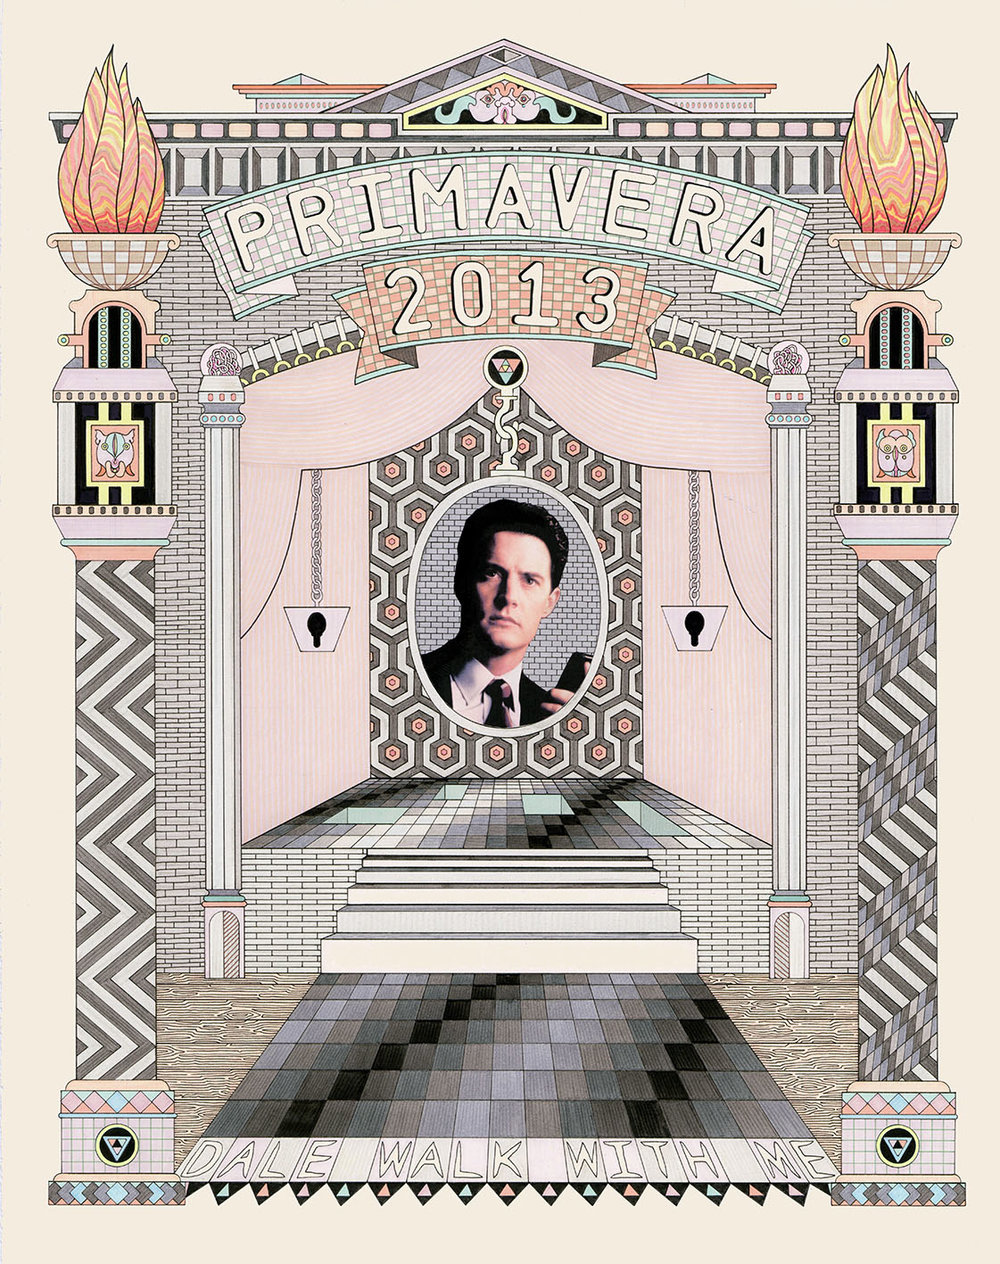 Cover for Primavera exhibition catalogue, 2013 Museum of Contemporary Art, Sydney, Australia